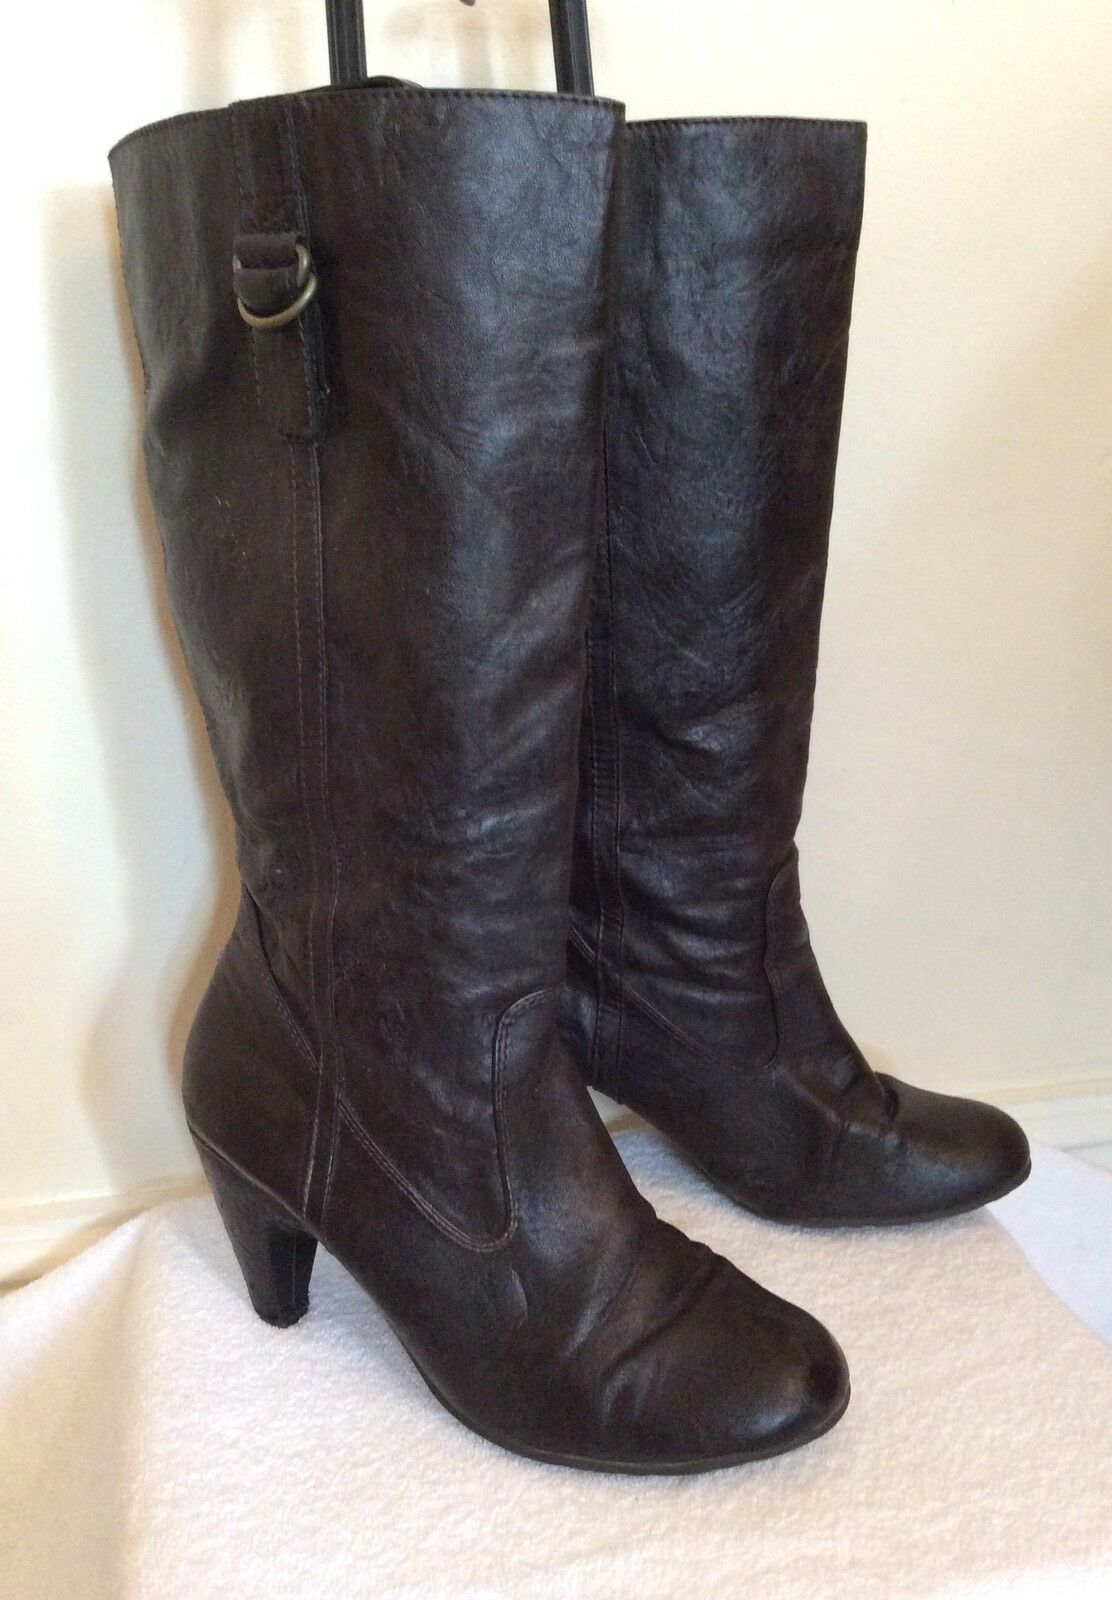 DOROTHY PERKINS DARK BROWN FAUX LEATHER BOOTS SIZE 6/39